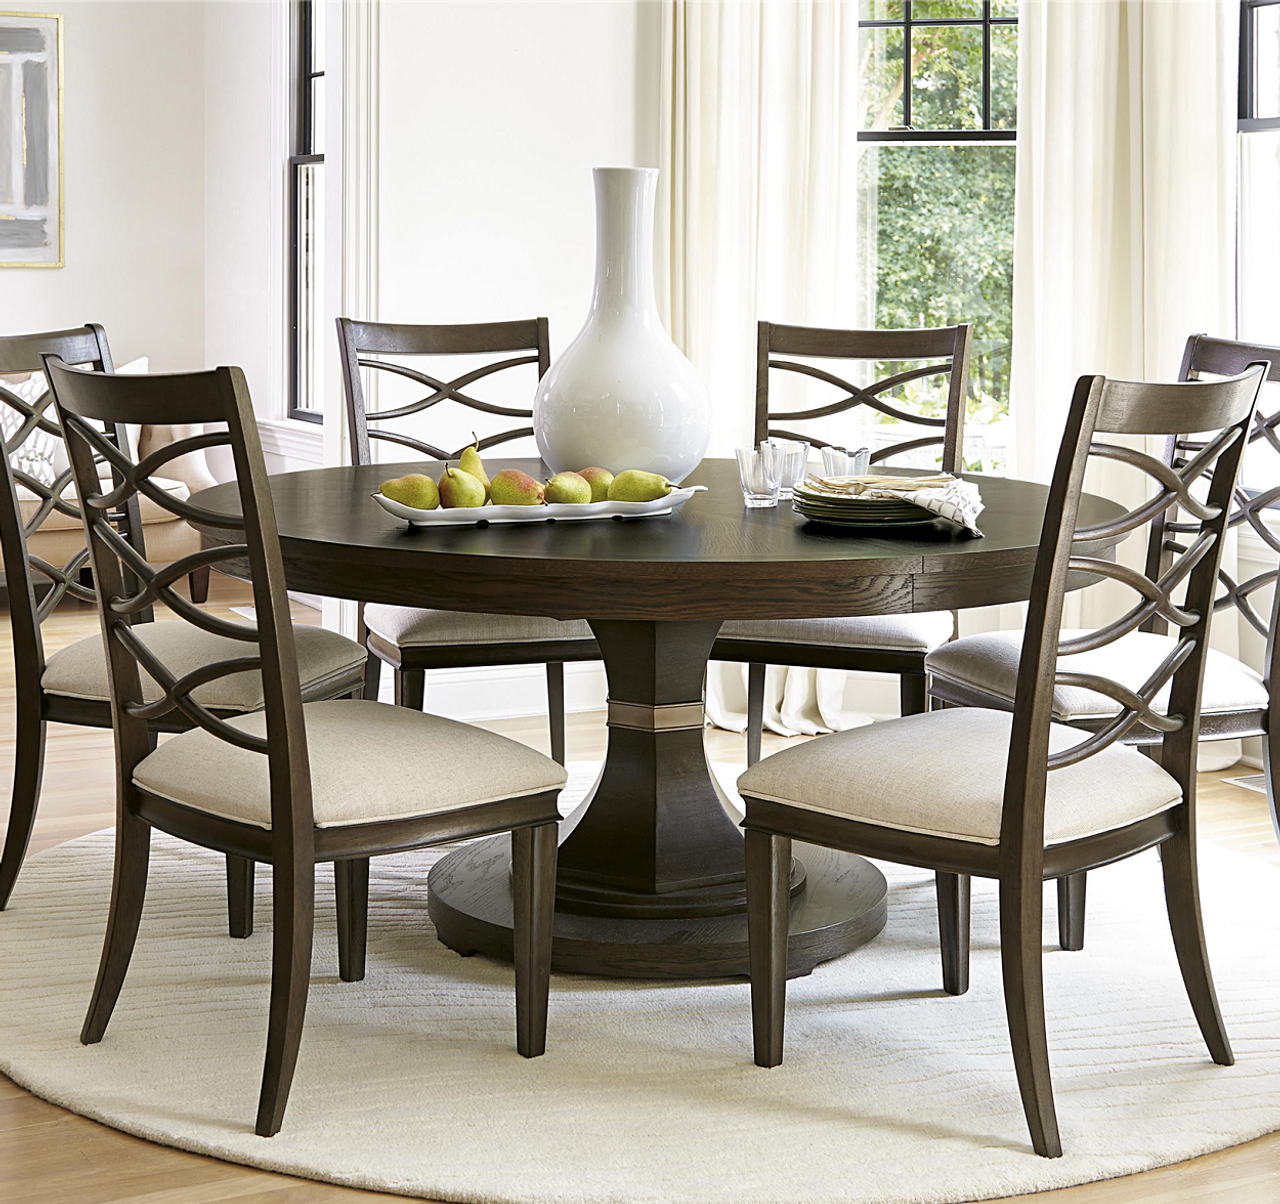 Round Kitchen Tables: California Rustic Oak Expandable Round Dining Table 64